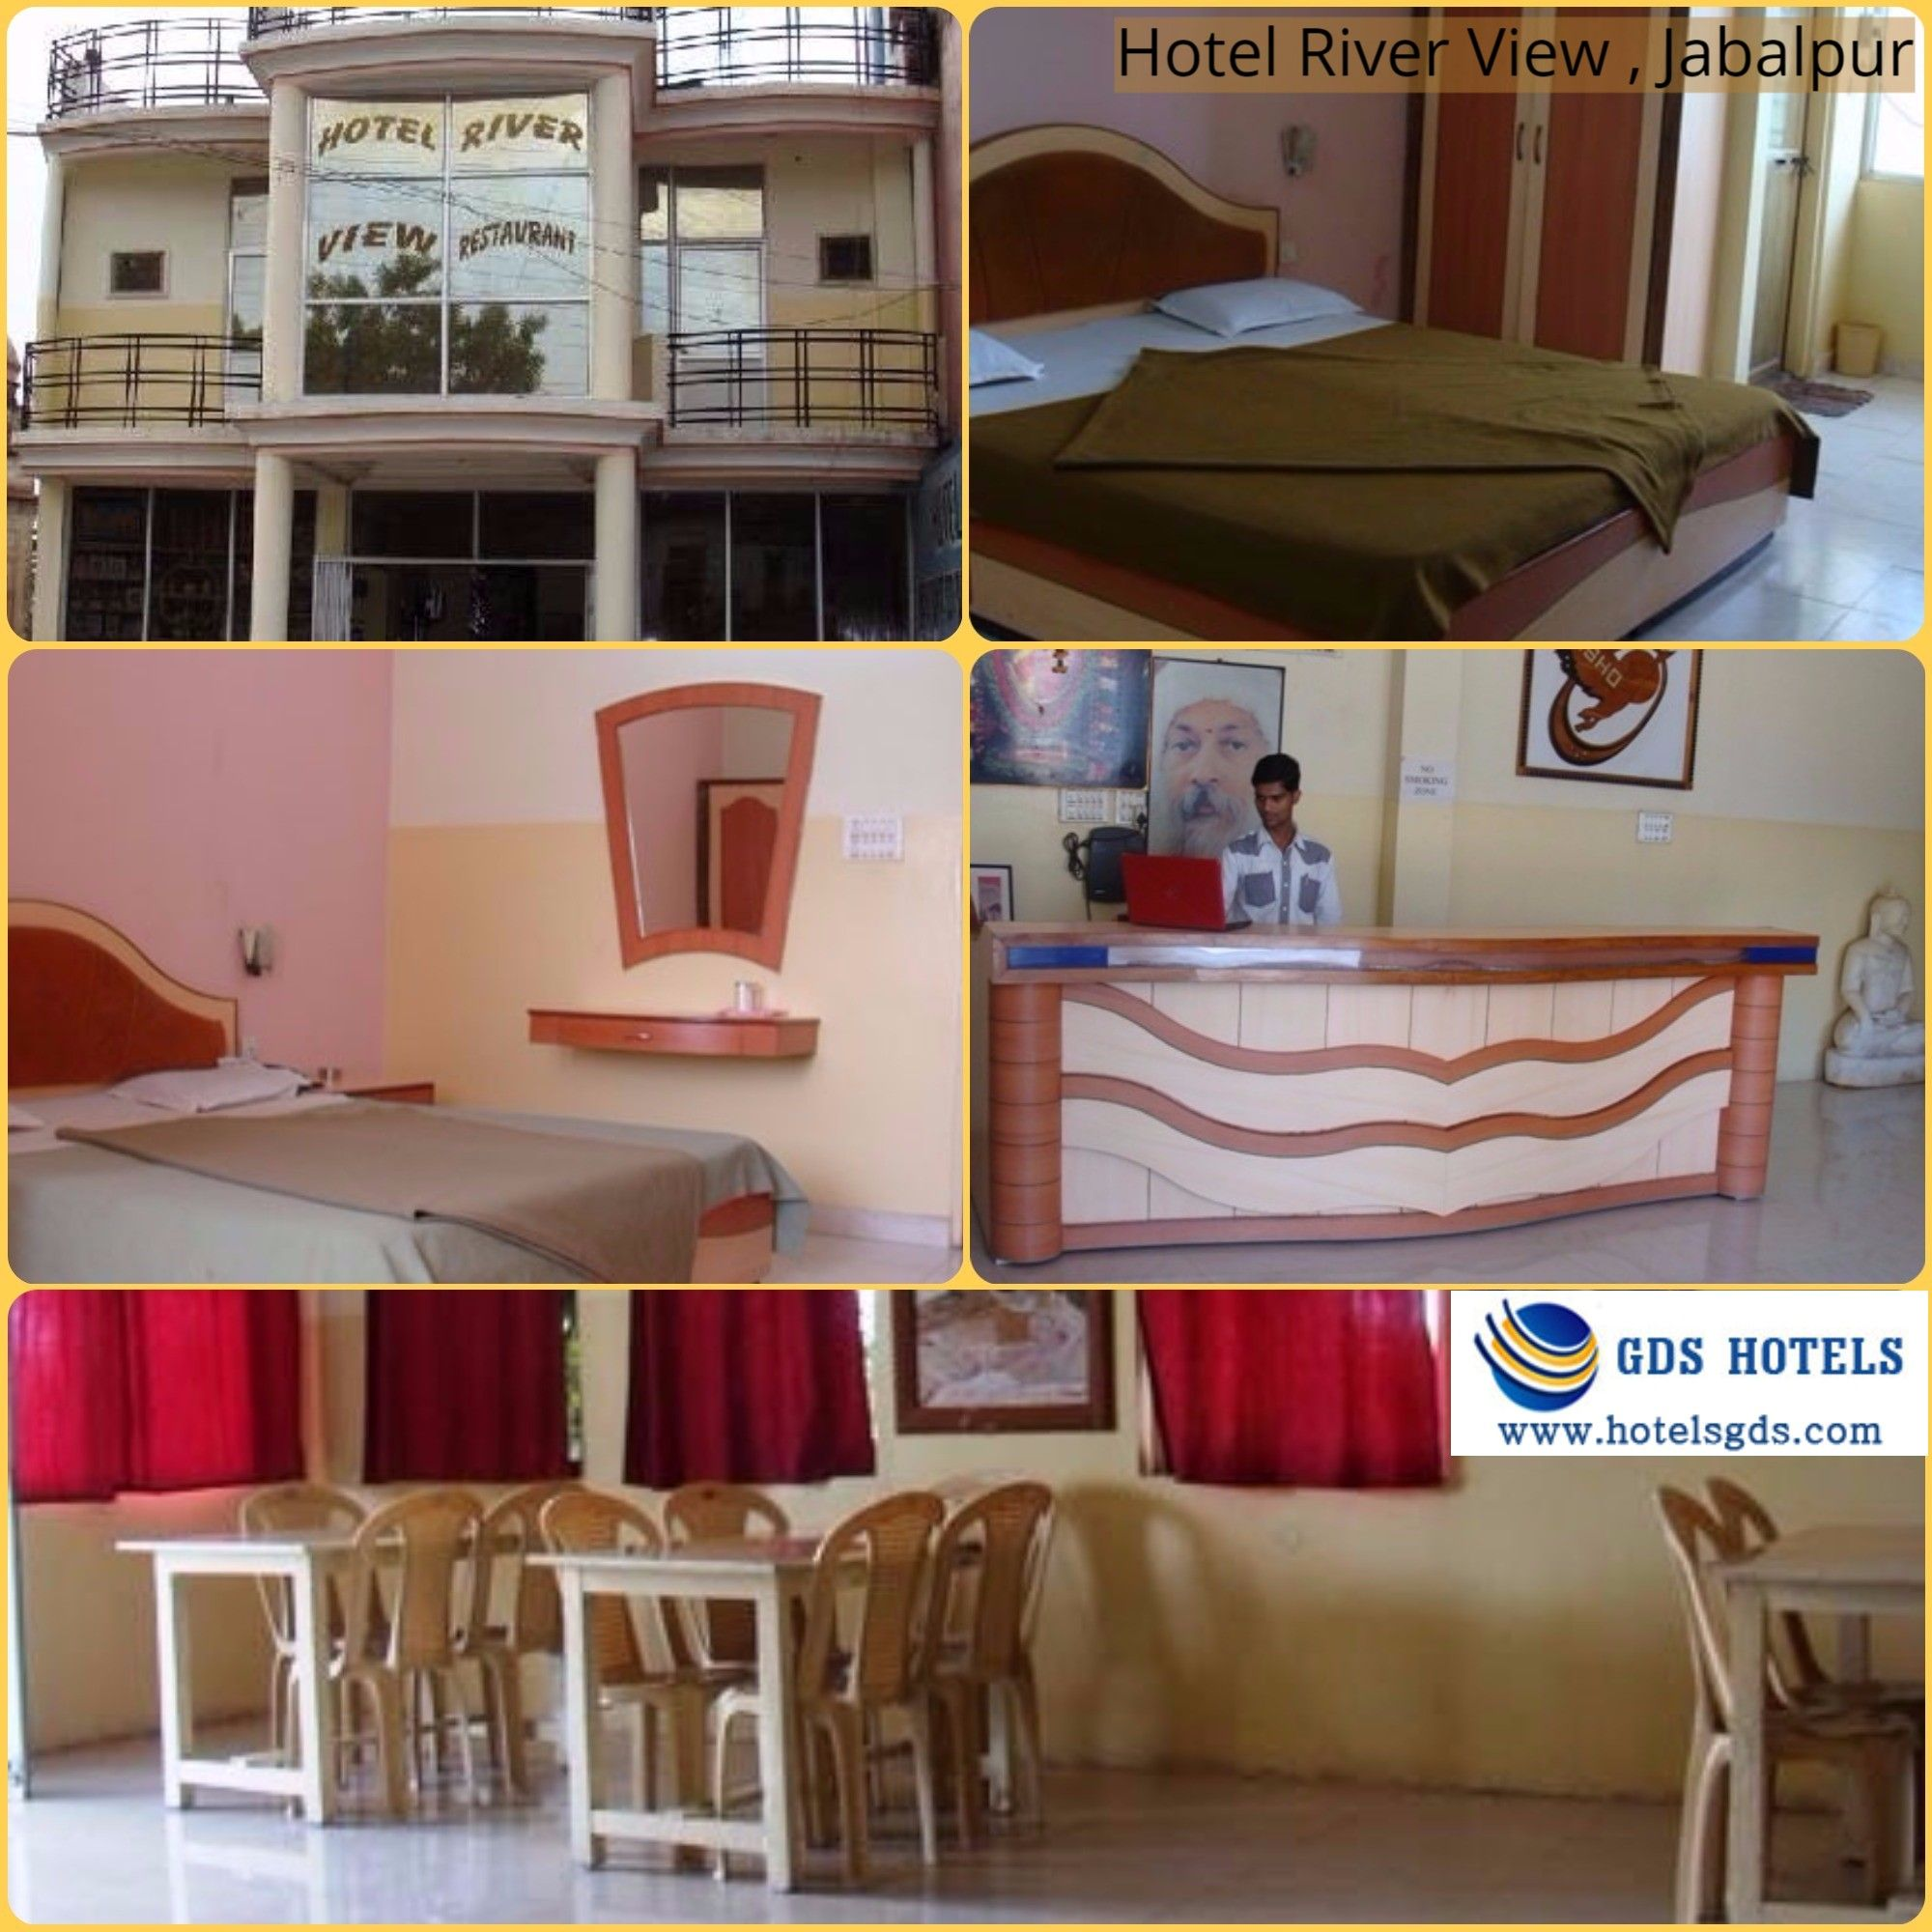 Hotel River View In Jabalpur, Is A Superb #hotel. In